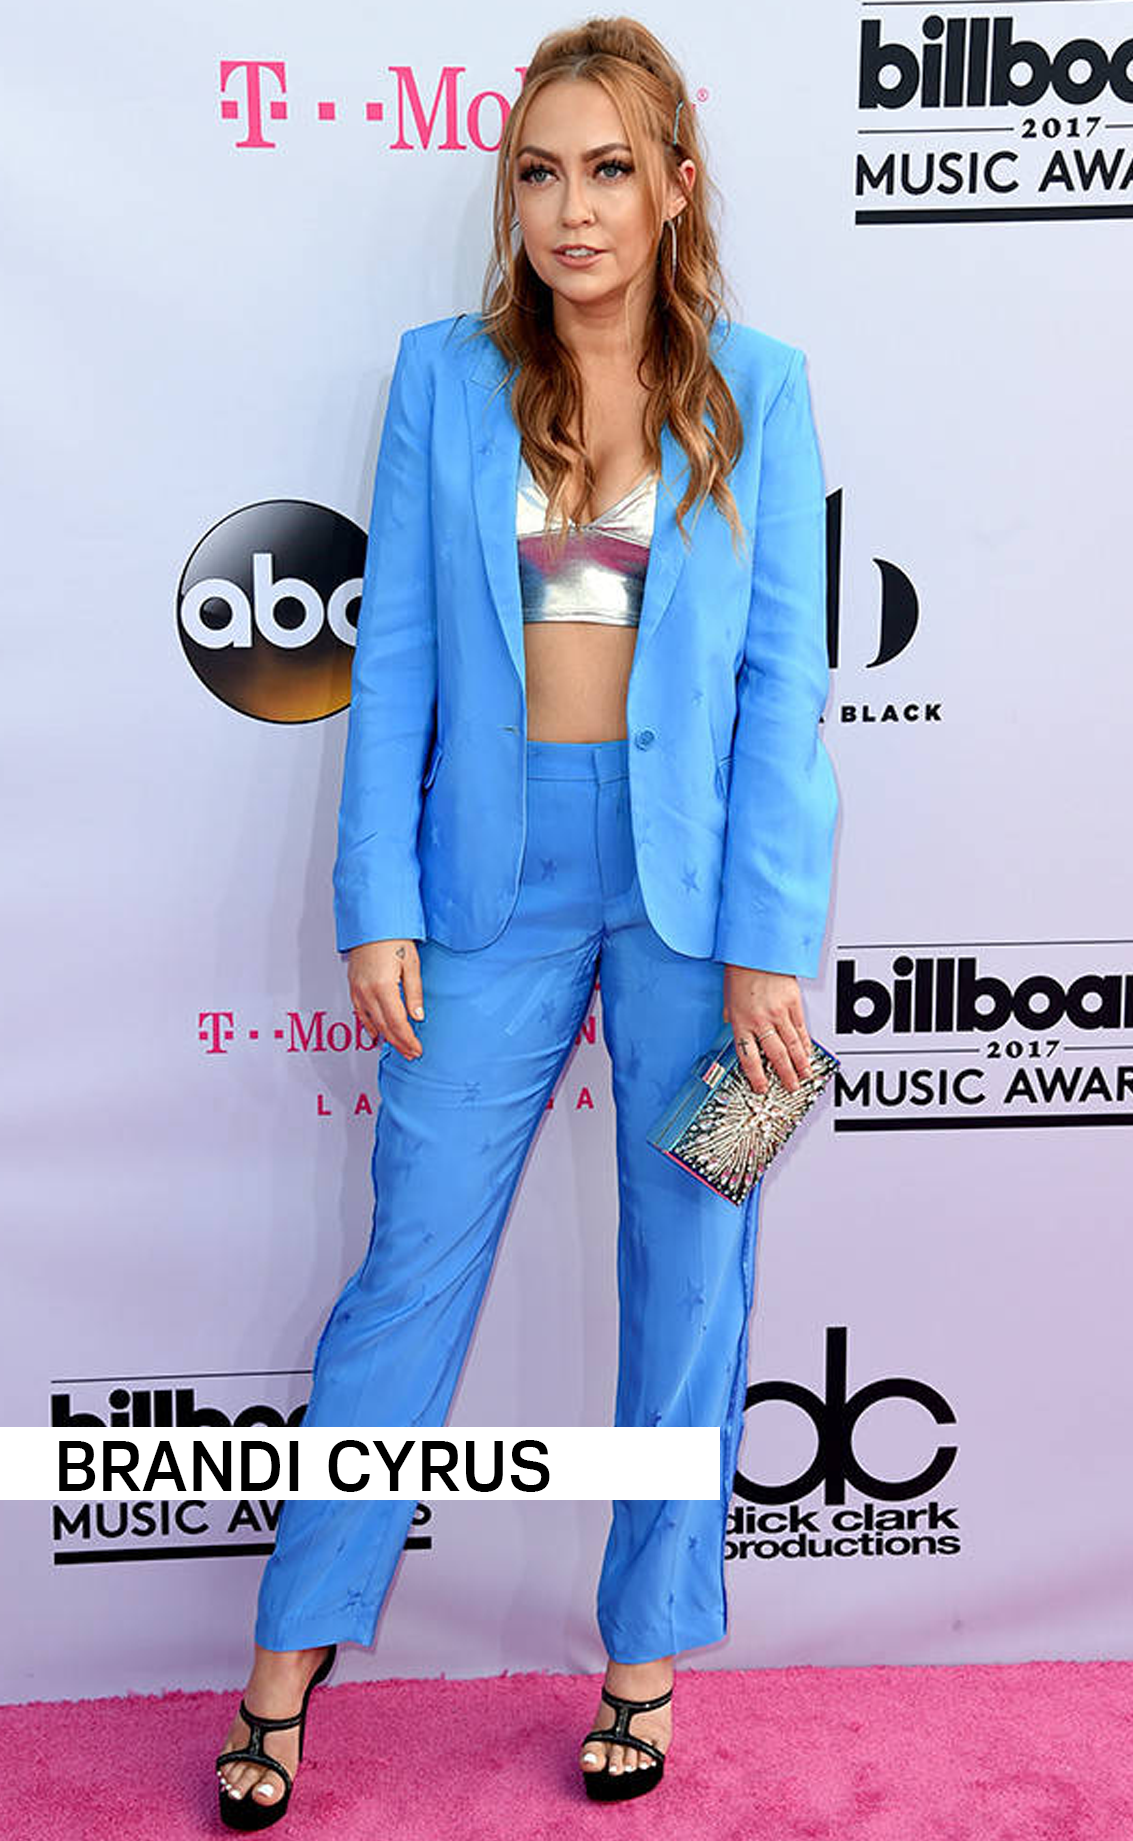 Billboard Music Awards 2017 4